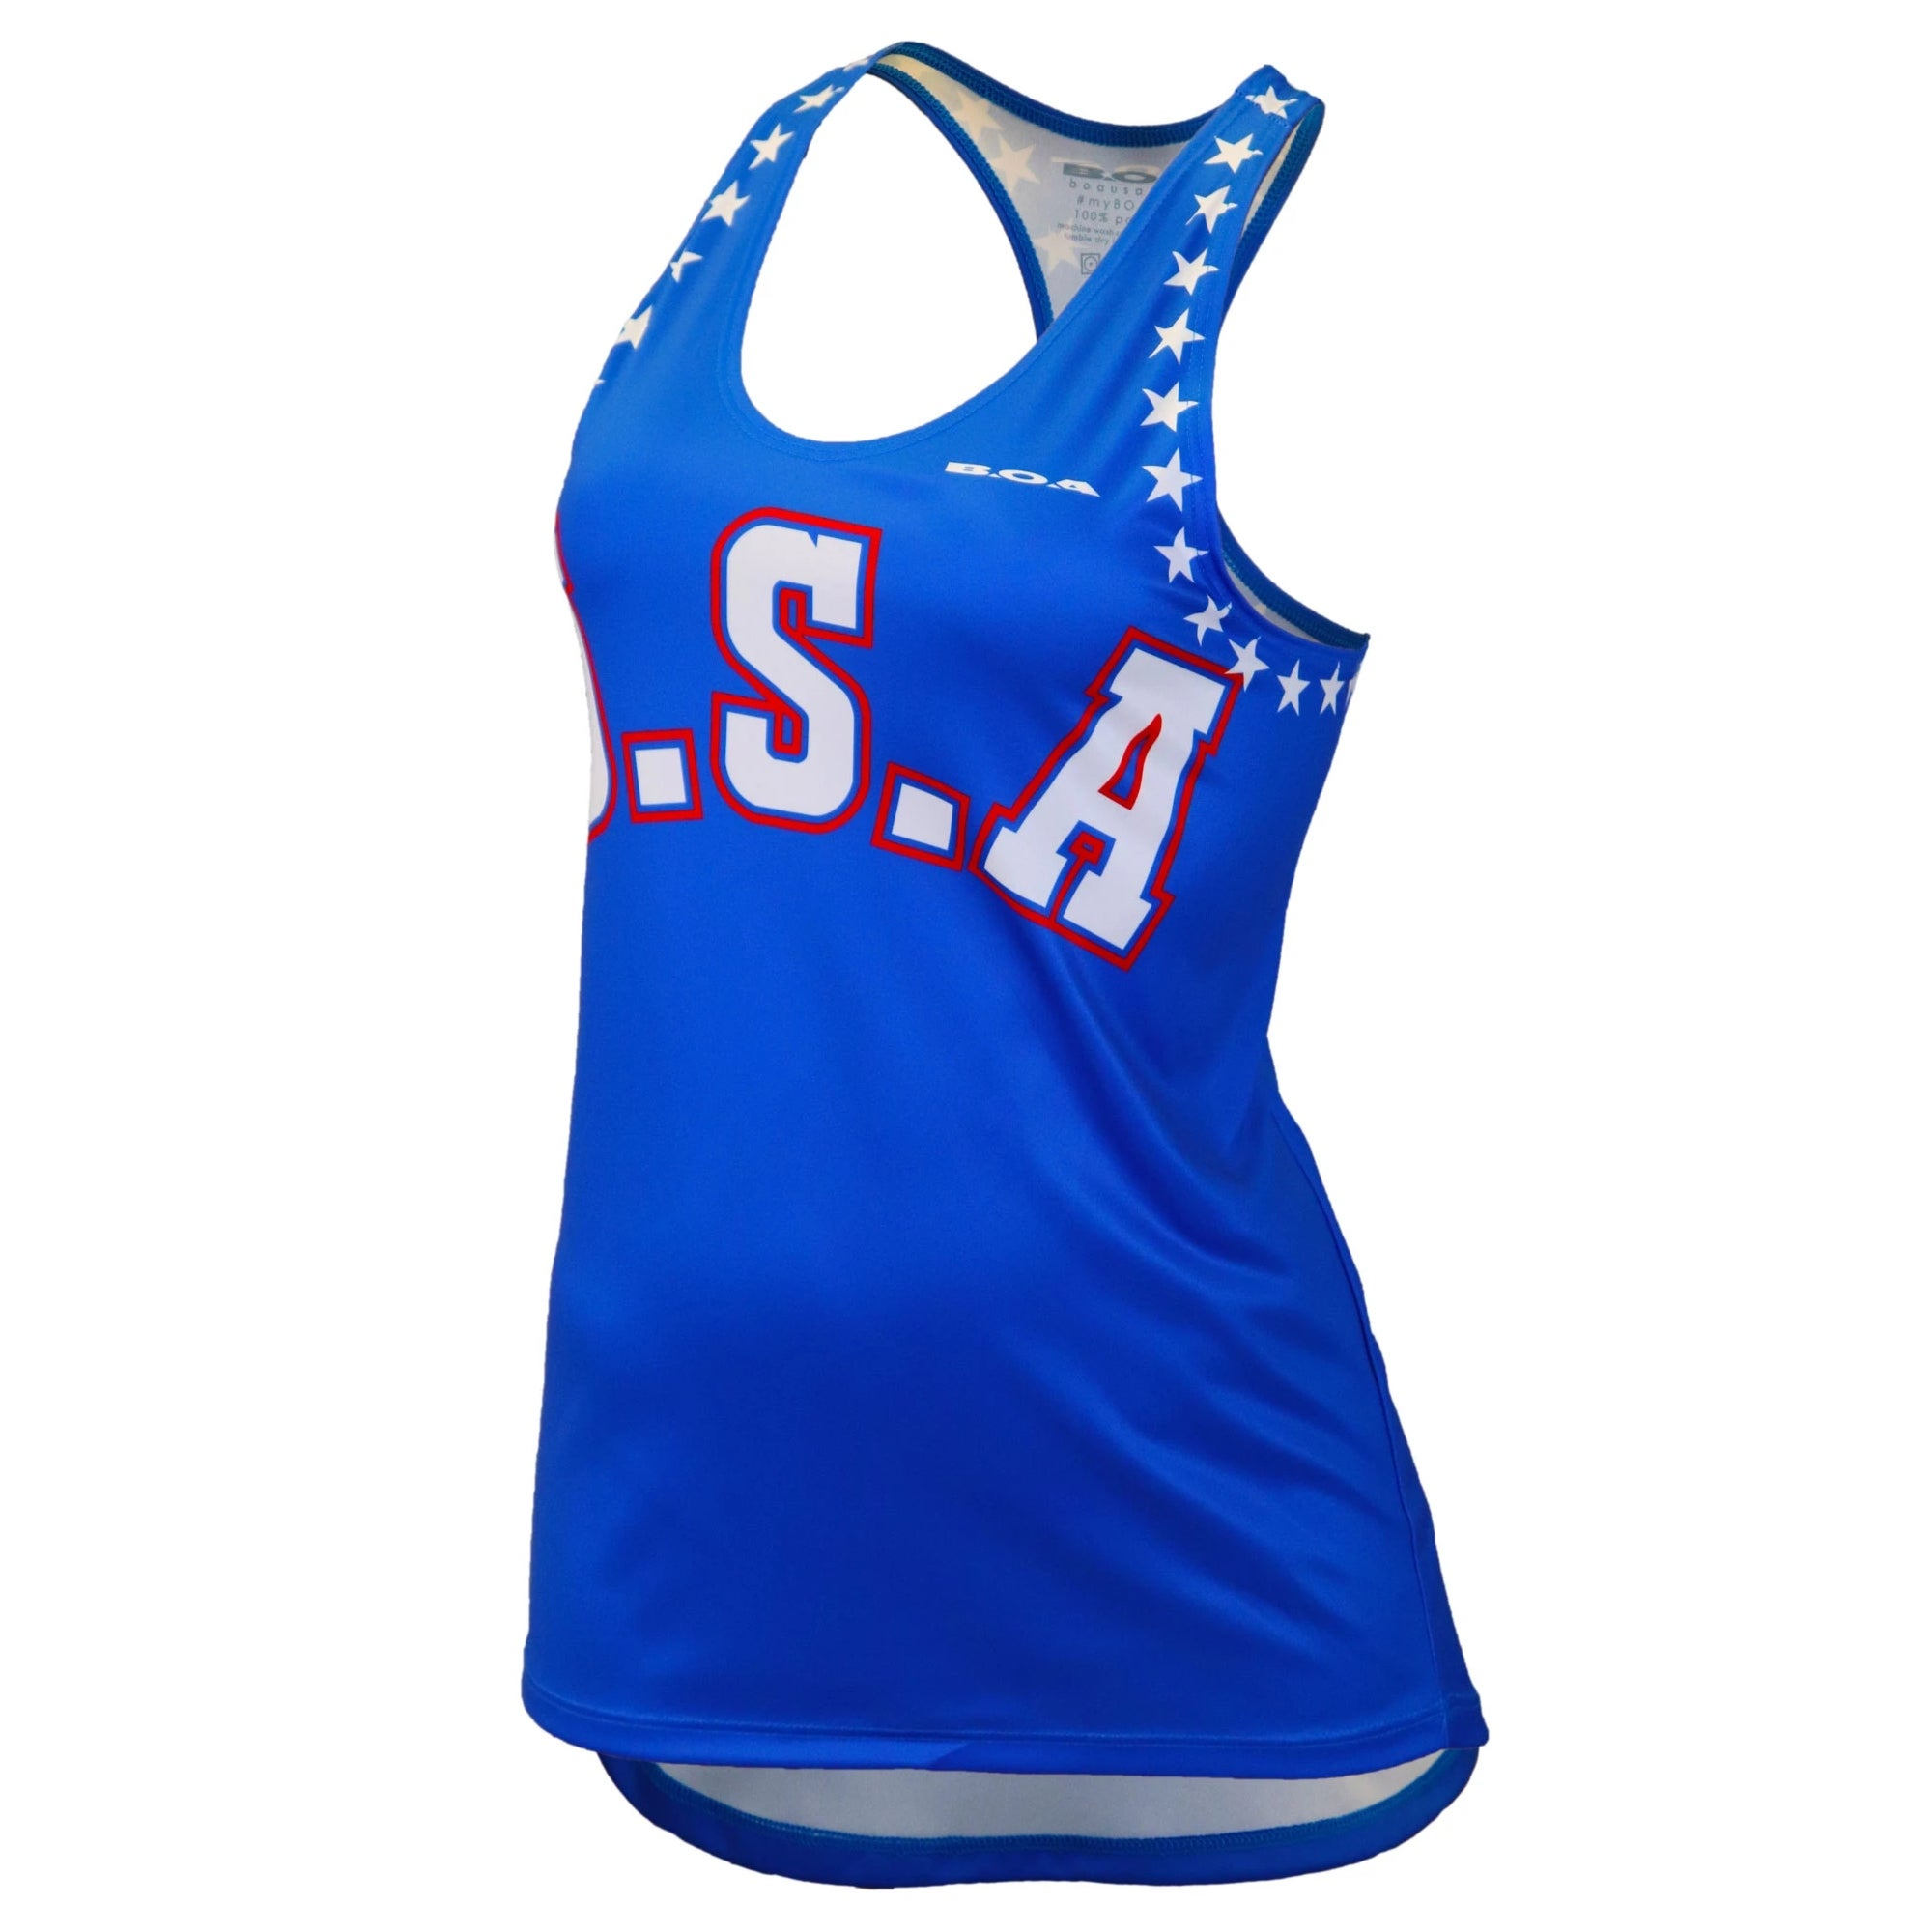 Royal blue tank top with USA in big letters on front and stars around arm holes